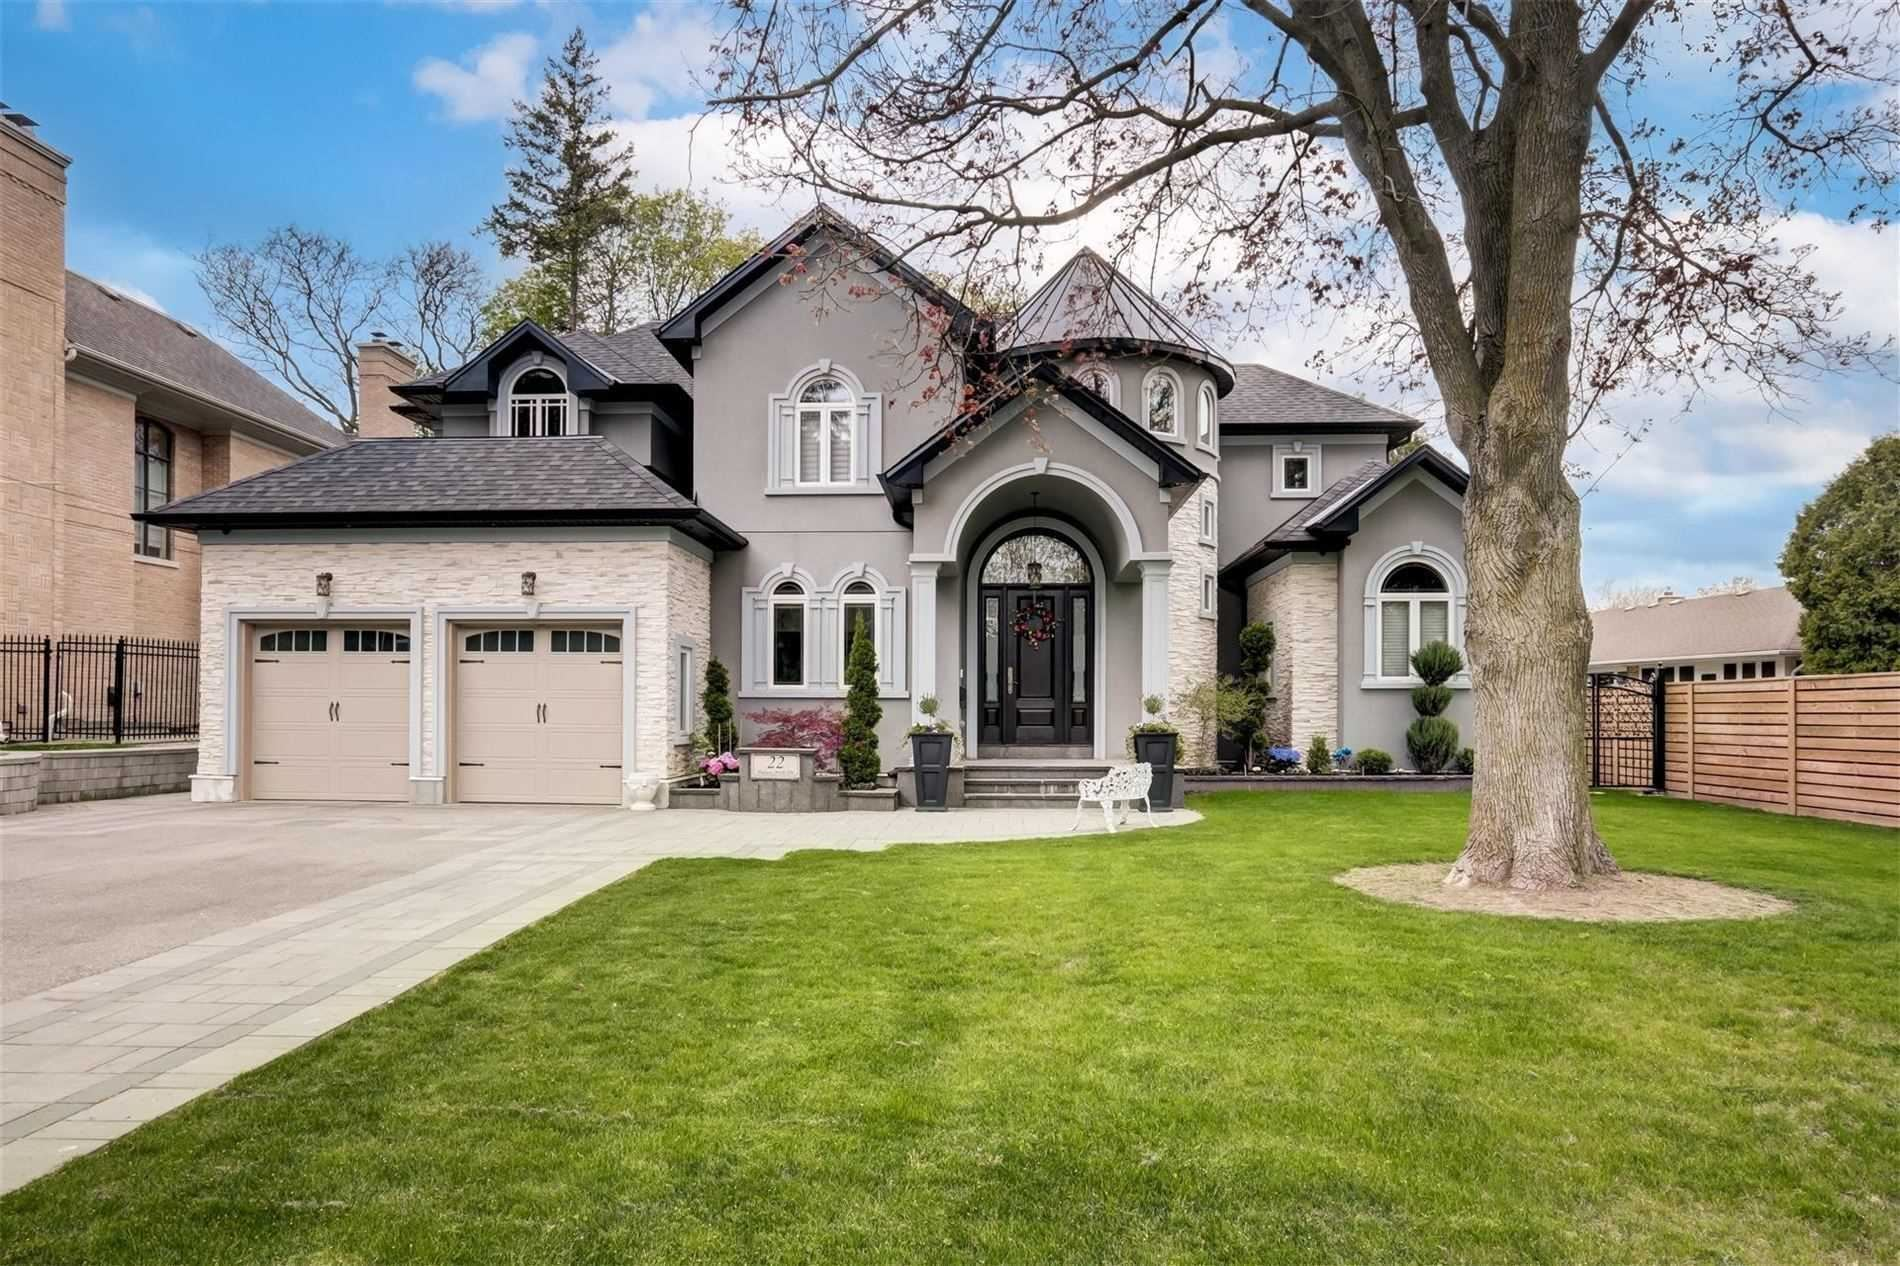 22 Palace Arch Dr, Toronto, ON M9A2S1 - MLS#: W5398803